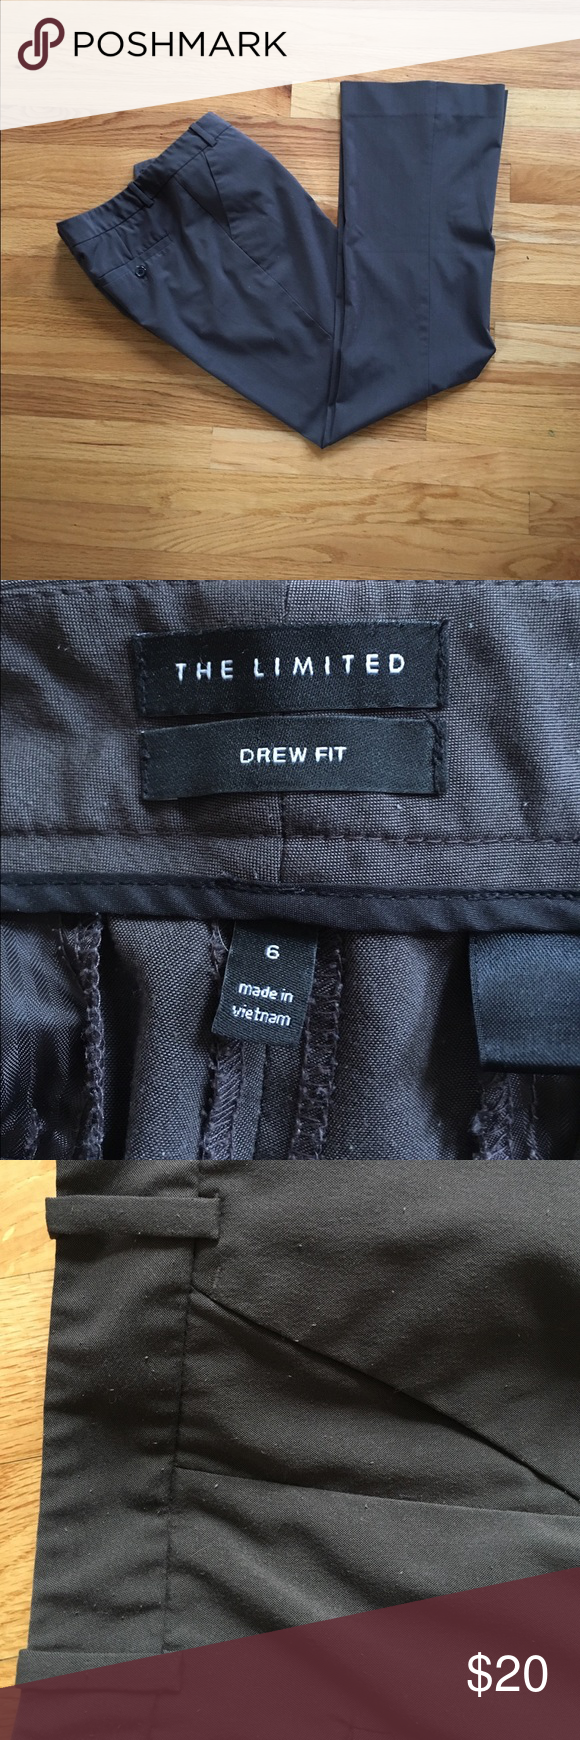 The Limited suit pants, brown/gray, good condition These pants are straight leg, Drew fit from the Limited. Matching blazer also listed, will bundle price if interested. Some light pilling from wear as shown in photo. No other flaws or damage. Classic fit and with the blazer makes a beautiful suit. Color is versatile brown/gray and can be worn with black or brown shoes/belt. I got every job I ever applied for while wearing this suit. 🤓 The Limited Pants Trousers